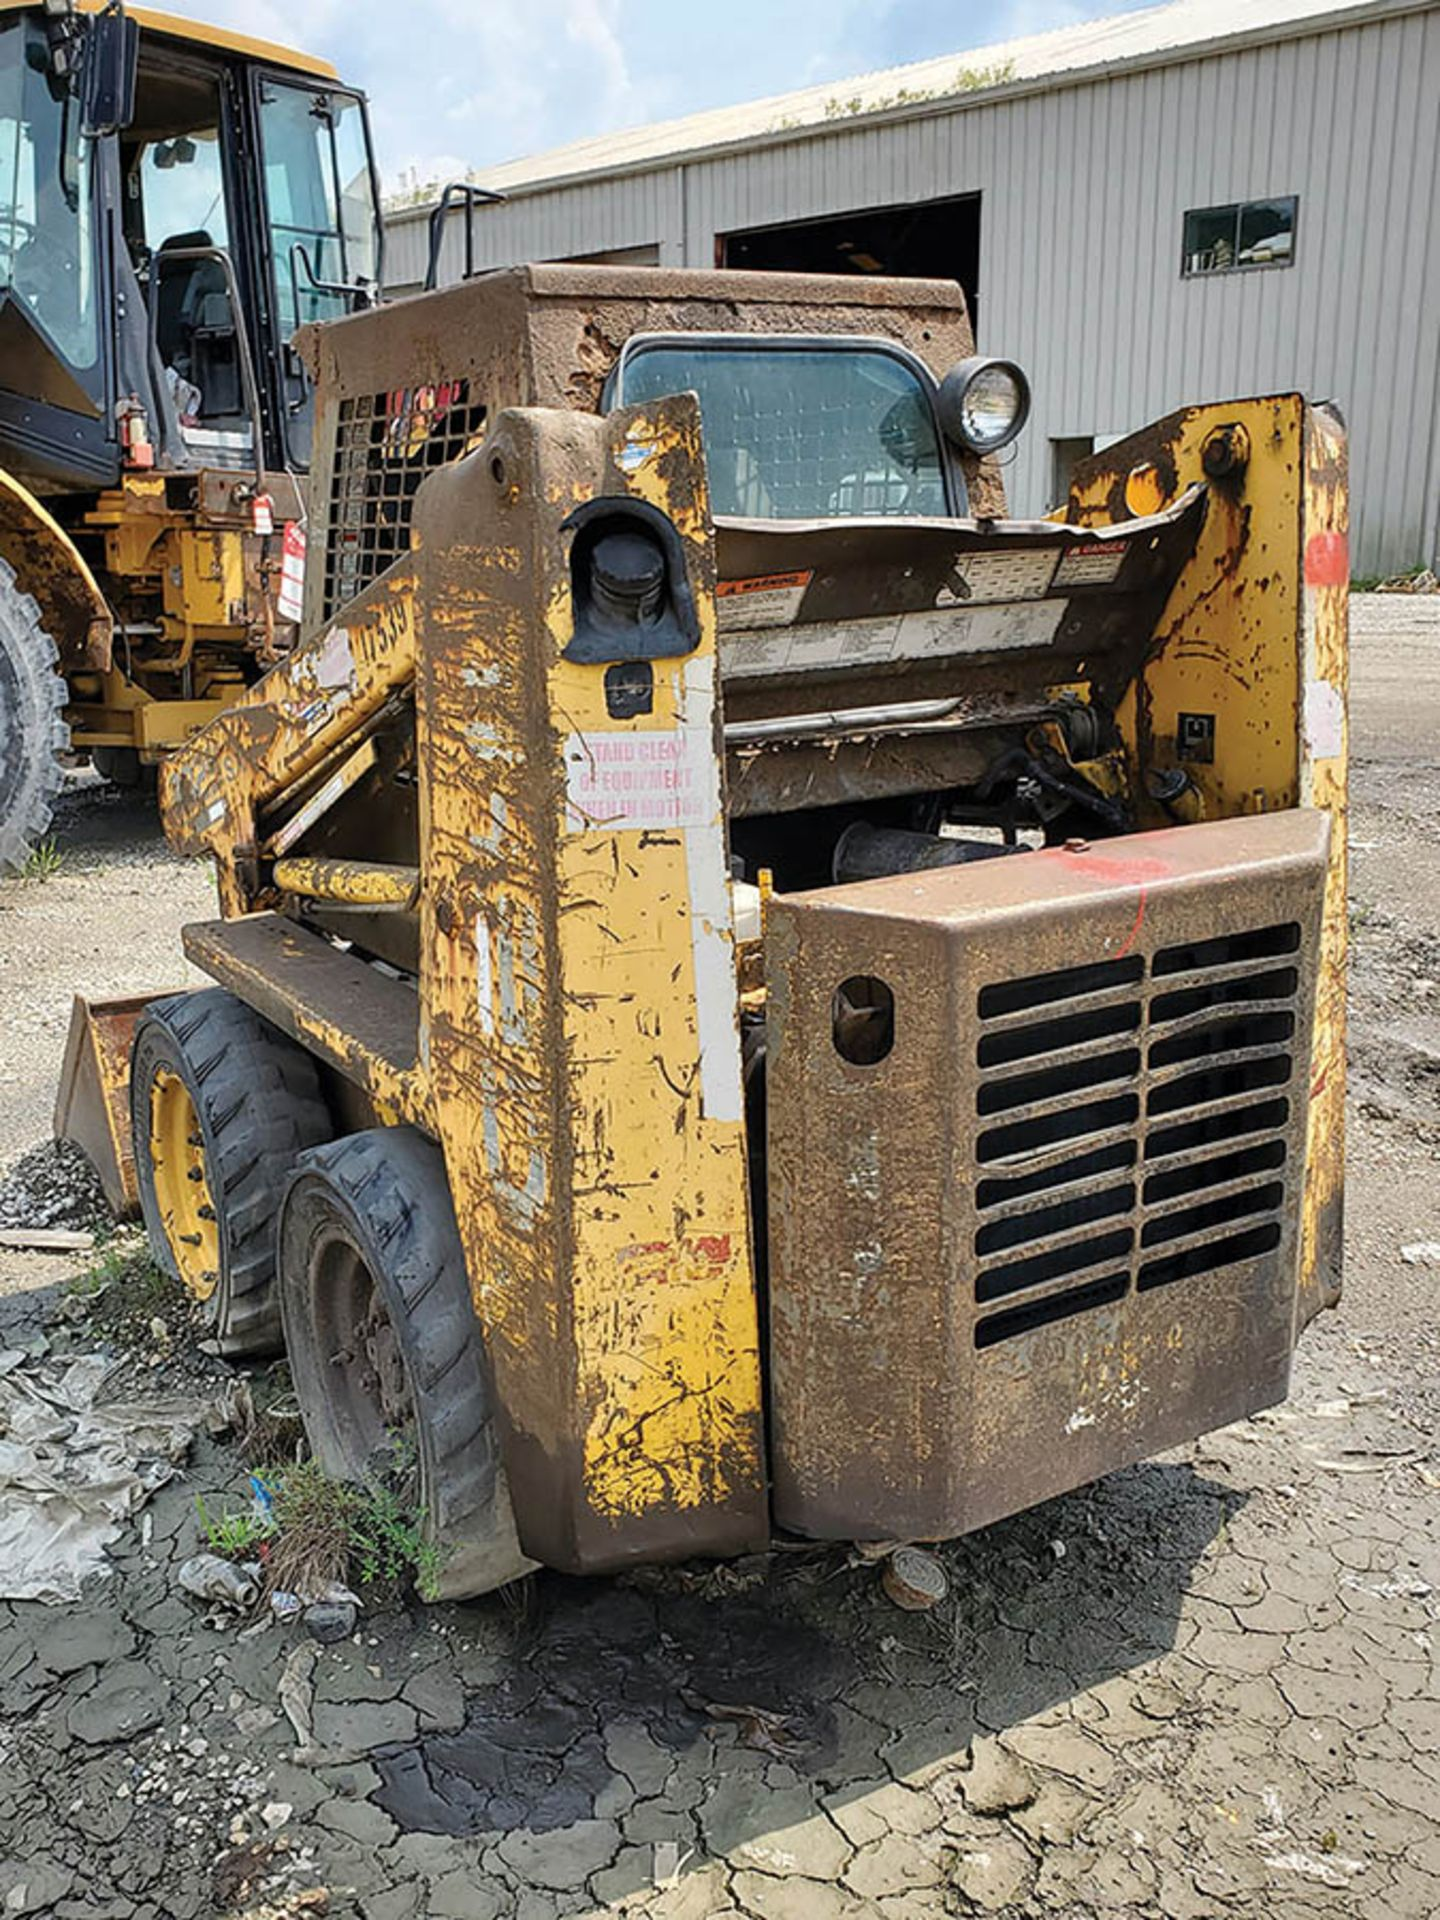 Lot 122 - GEIL SKID STEER LOADER, MODEL 3325SX LOCATION: LOWER LEVEL BEECH FORK YARD